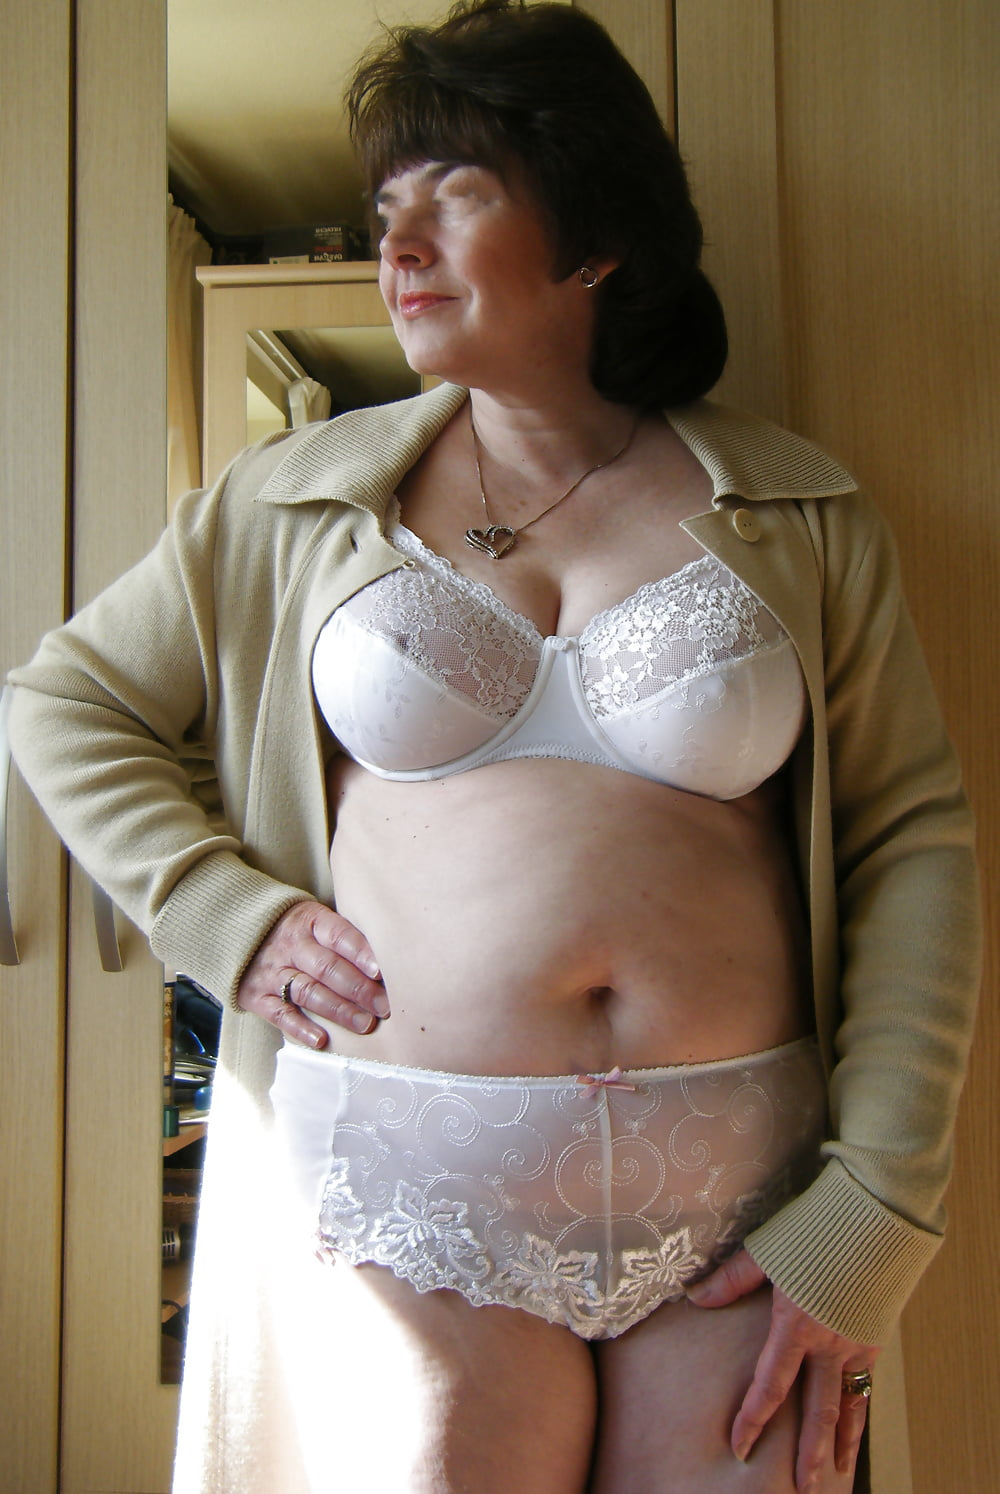 Mature bra panty pictures, sexy mum with big tits